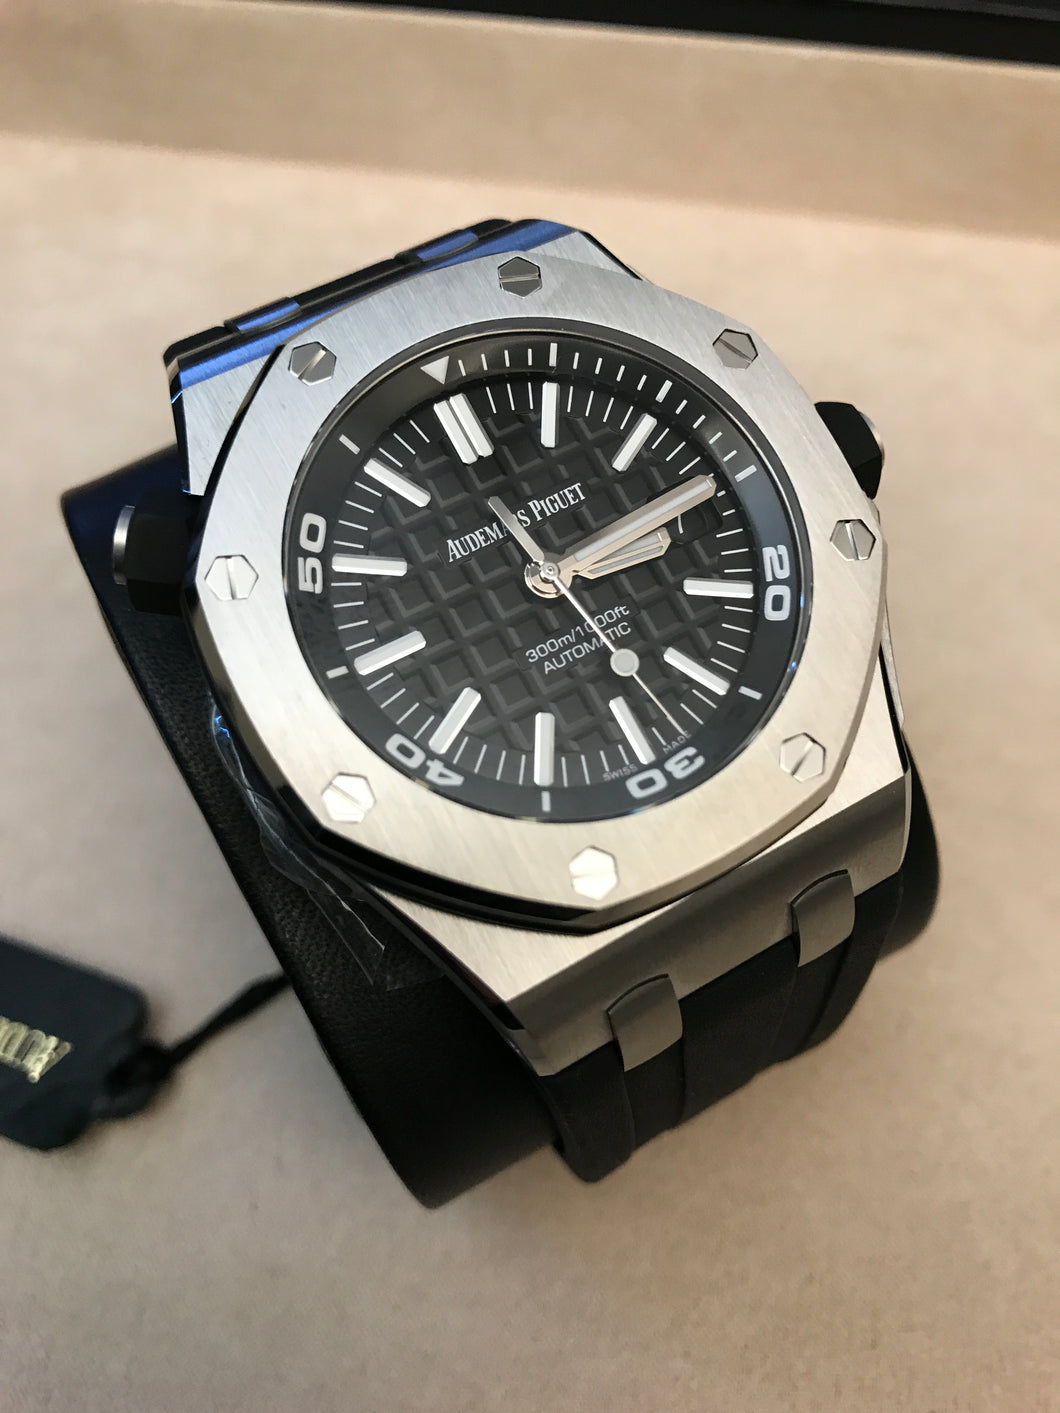 Audemars Piguet Royal Oak Offshore Diver Stainless Steel Grande Tapisserie Black Dial